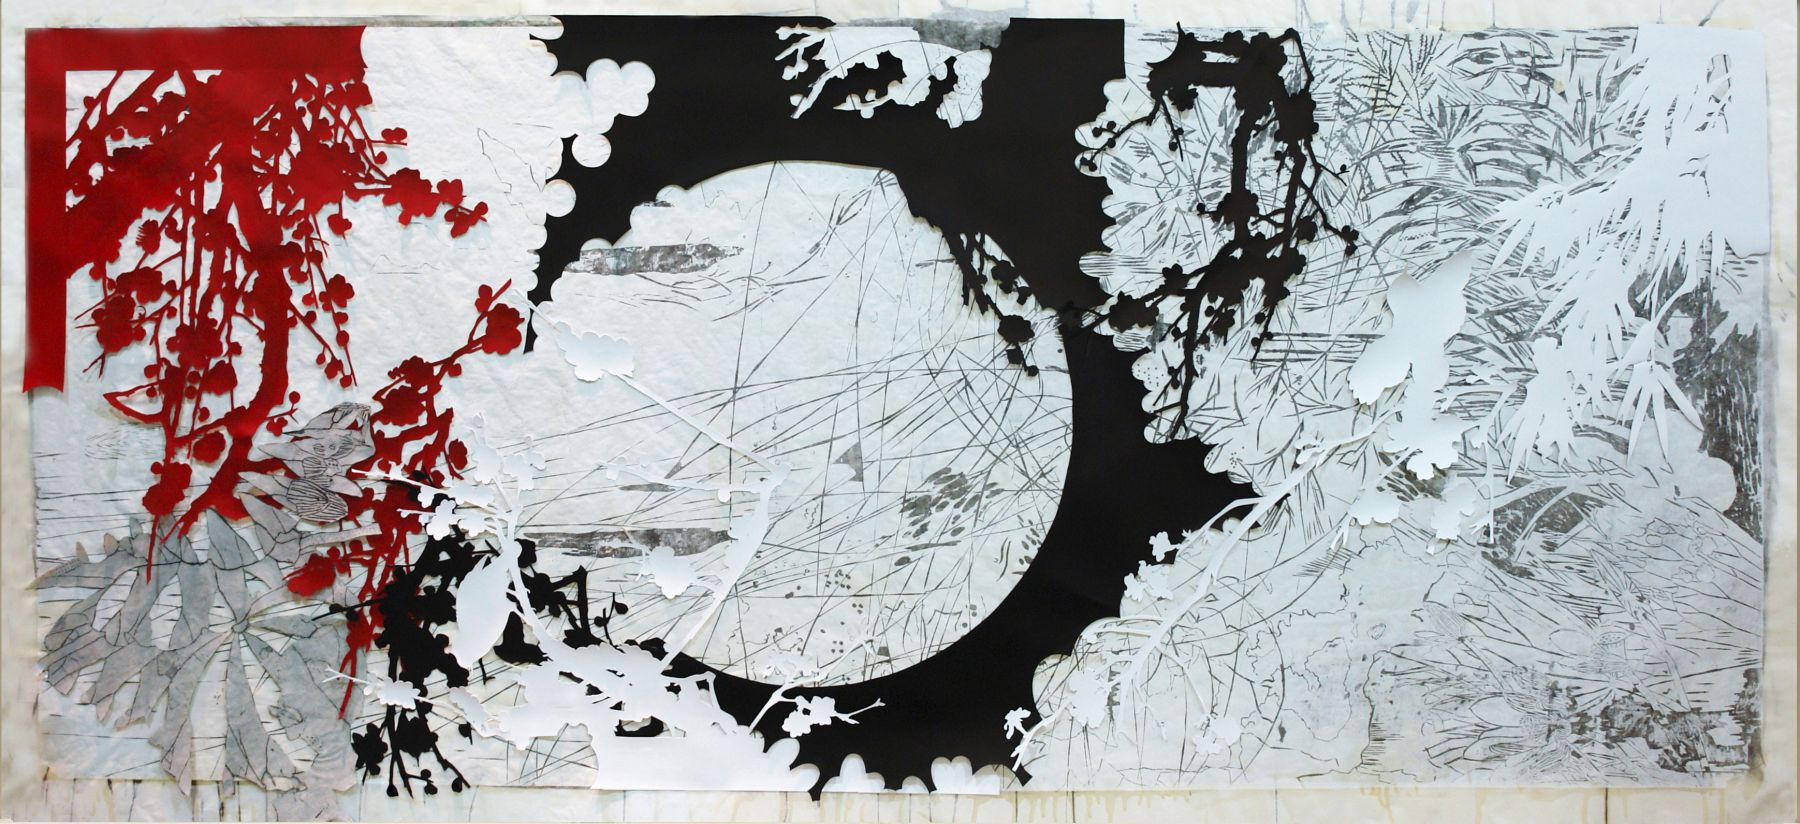 Judy Pfaff, Year of the Dog #6, 2009, woodblock, collage, hand painting, 38 1/2 x 86 1/2 inches  Edition 3/12